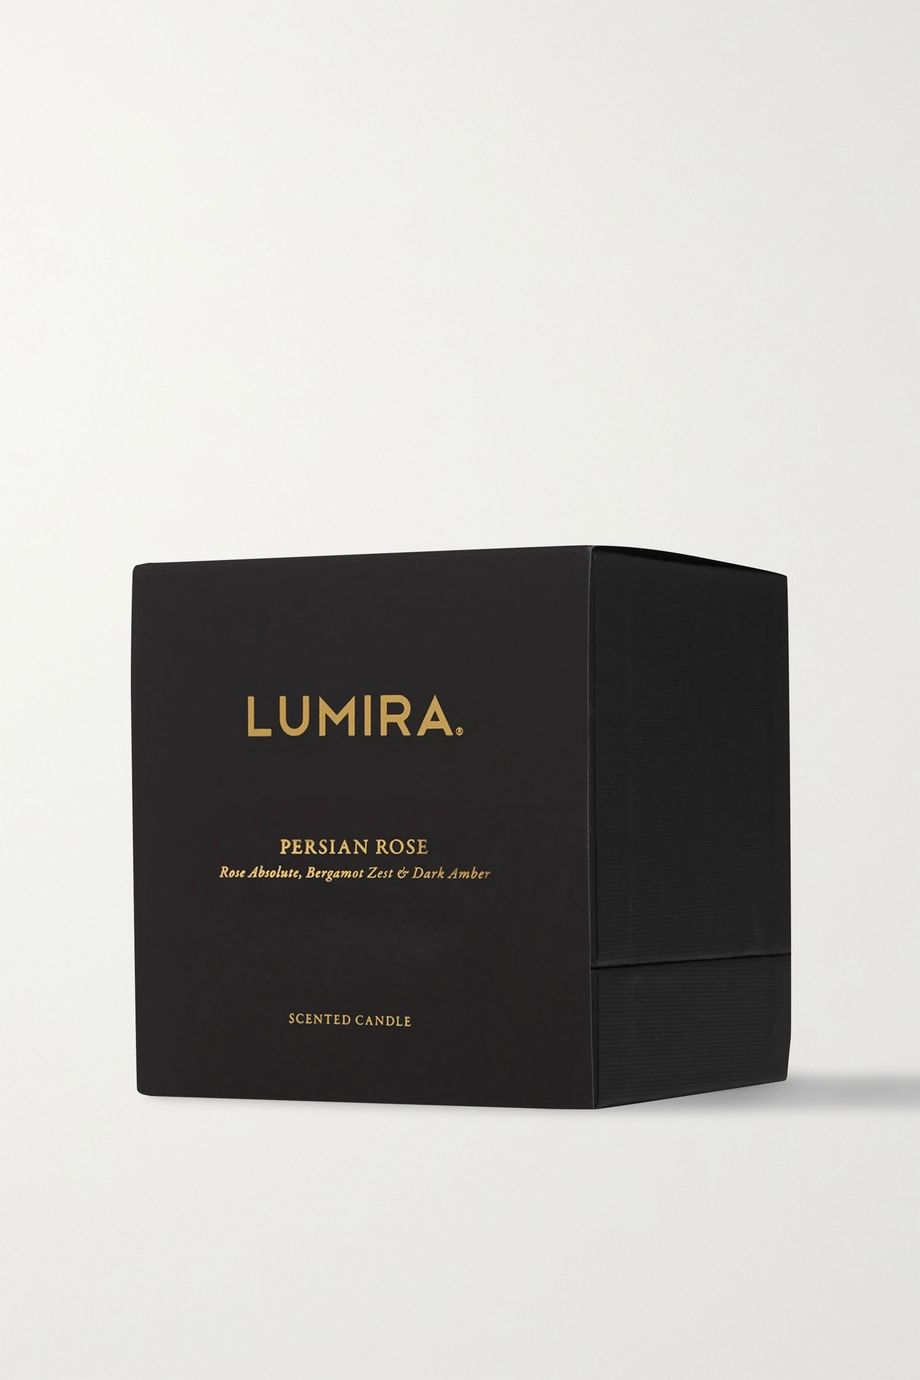 LUMIRA Persian Rose scented candle, 300g